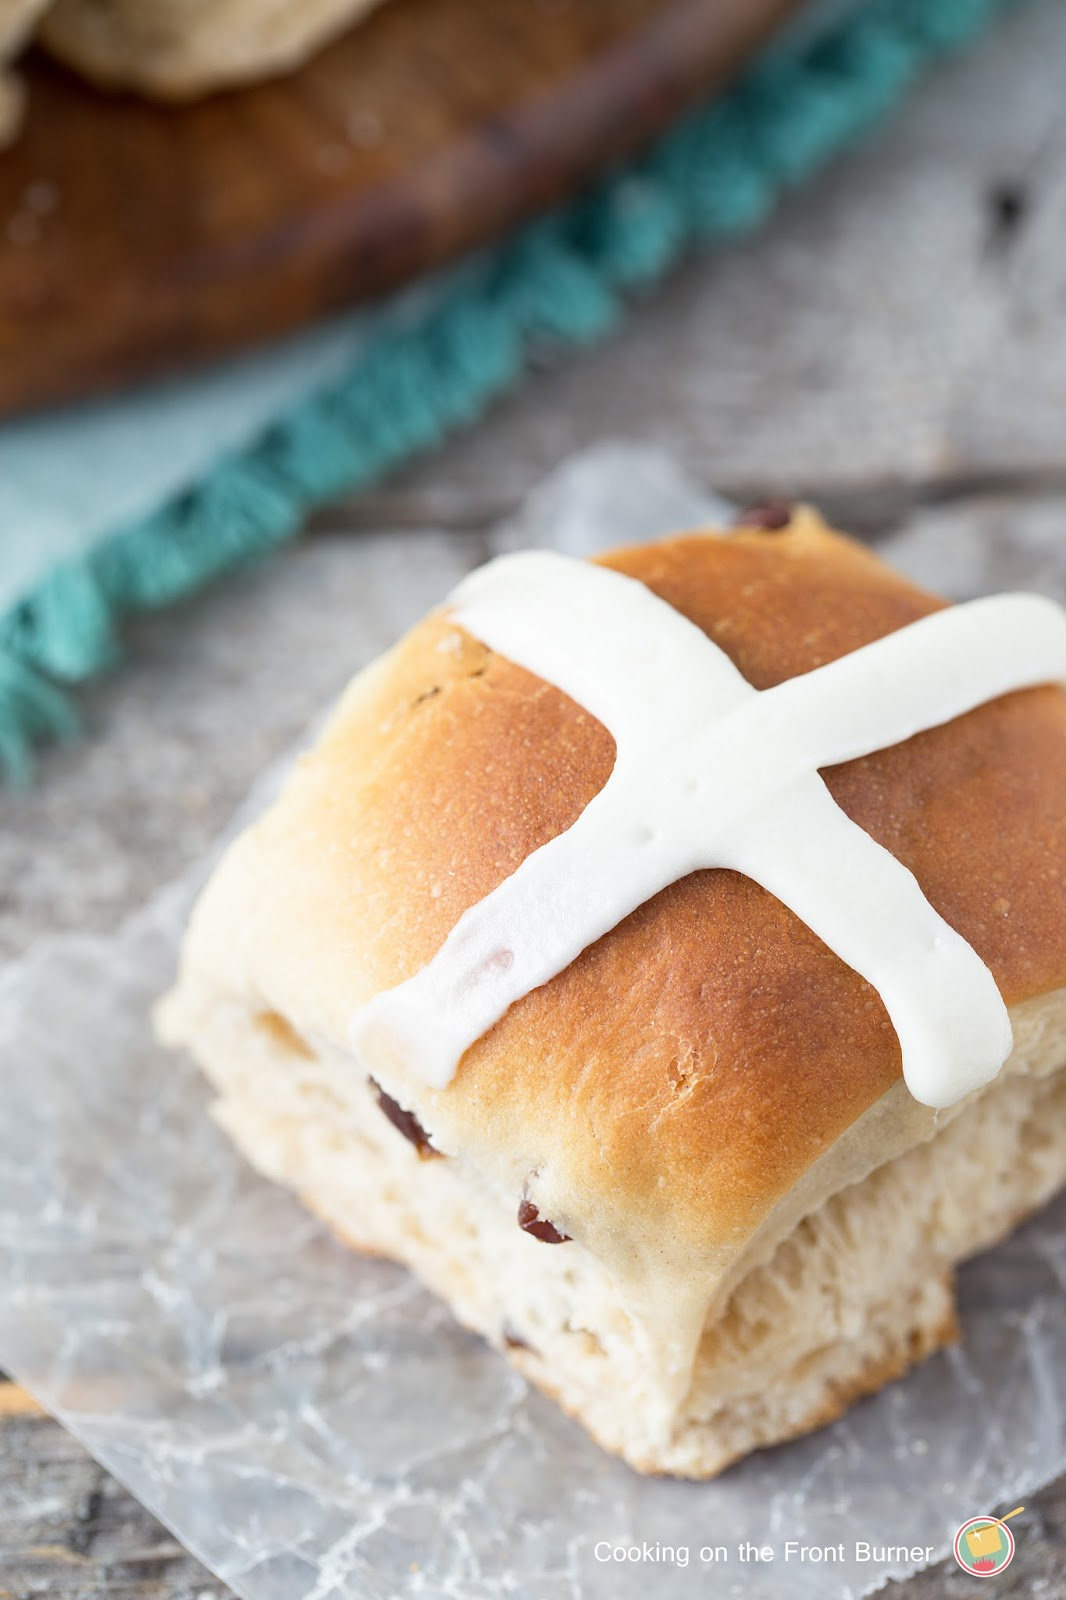 Hot Cross Buns | Cooking on the Front Burner